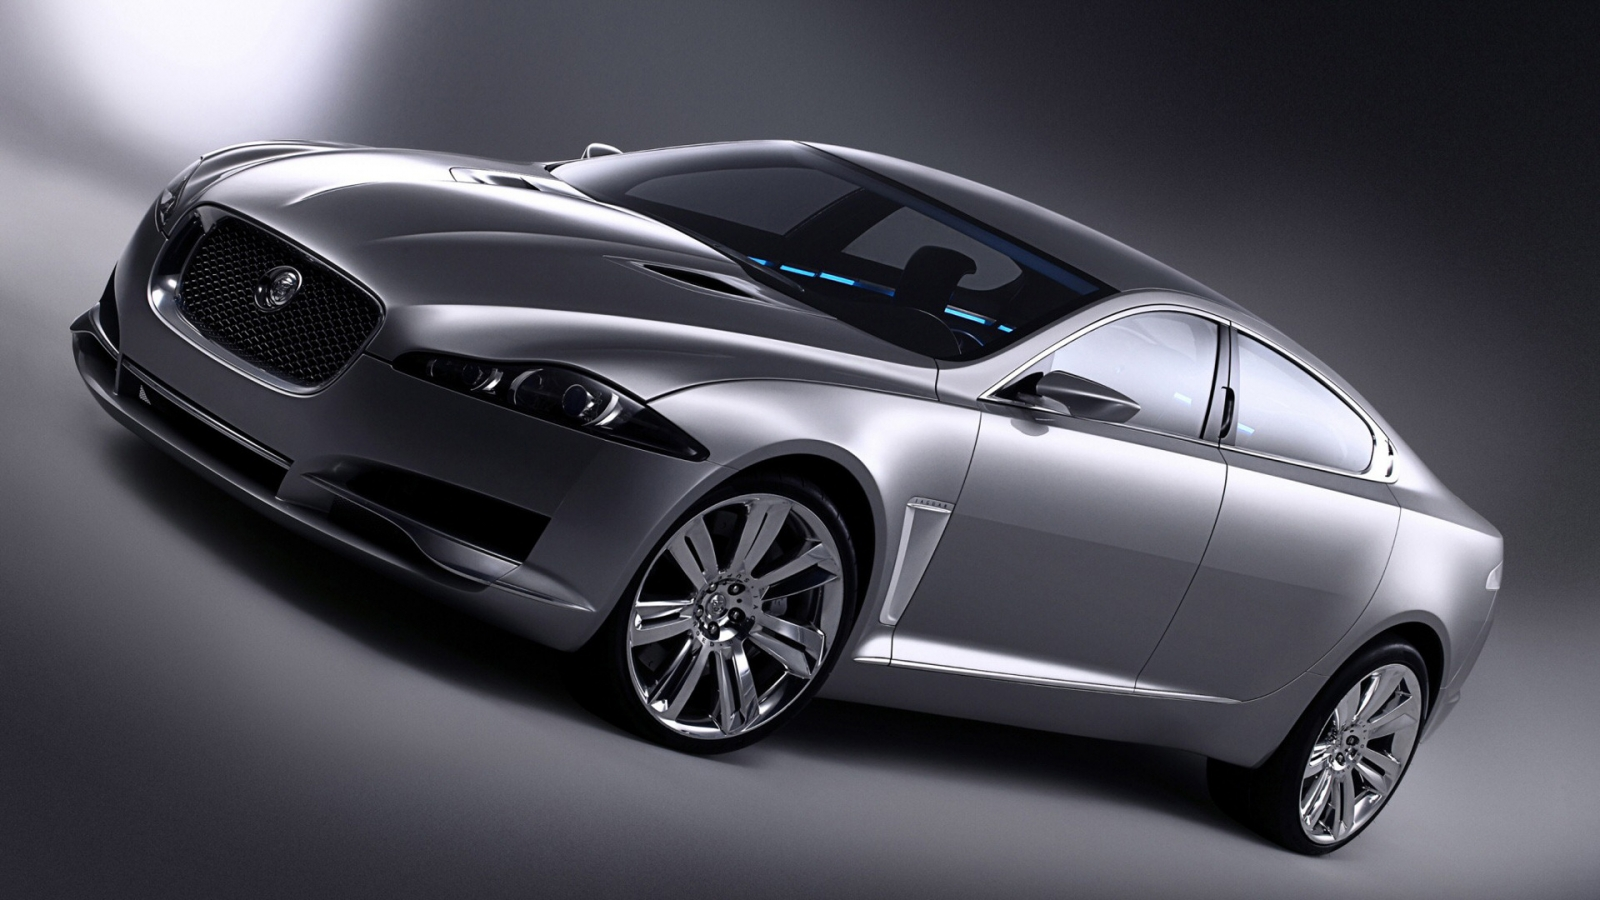 Jaguar C XF for 1600 x 900 HDTV resolution